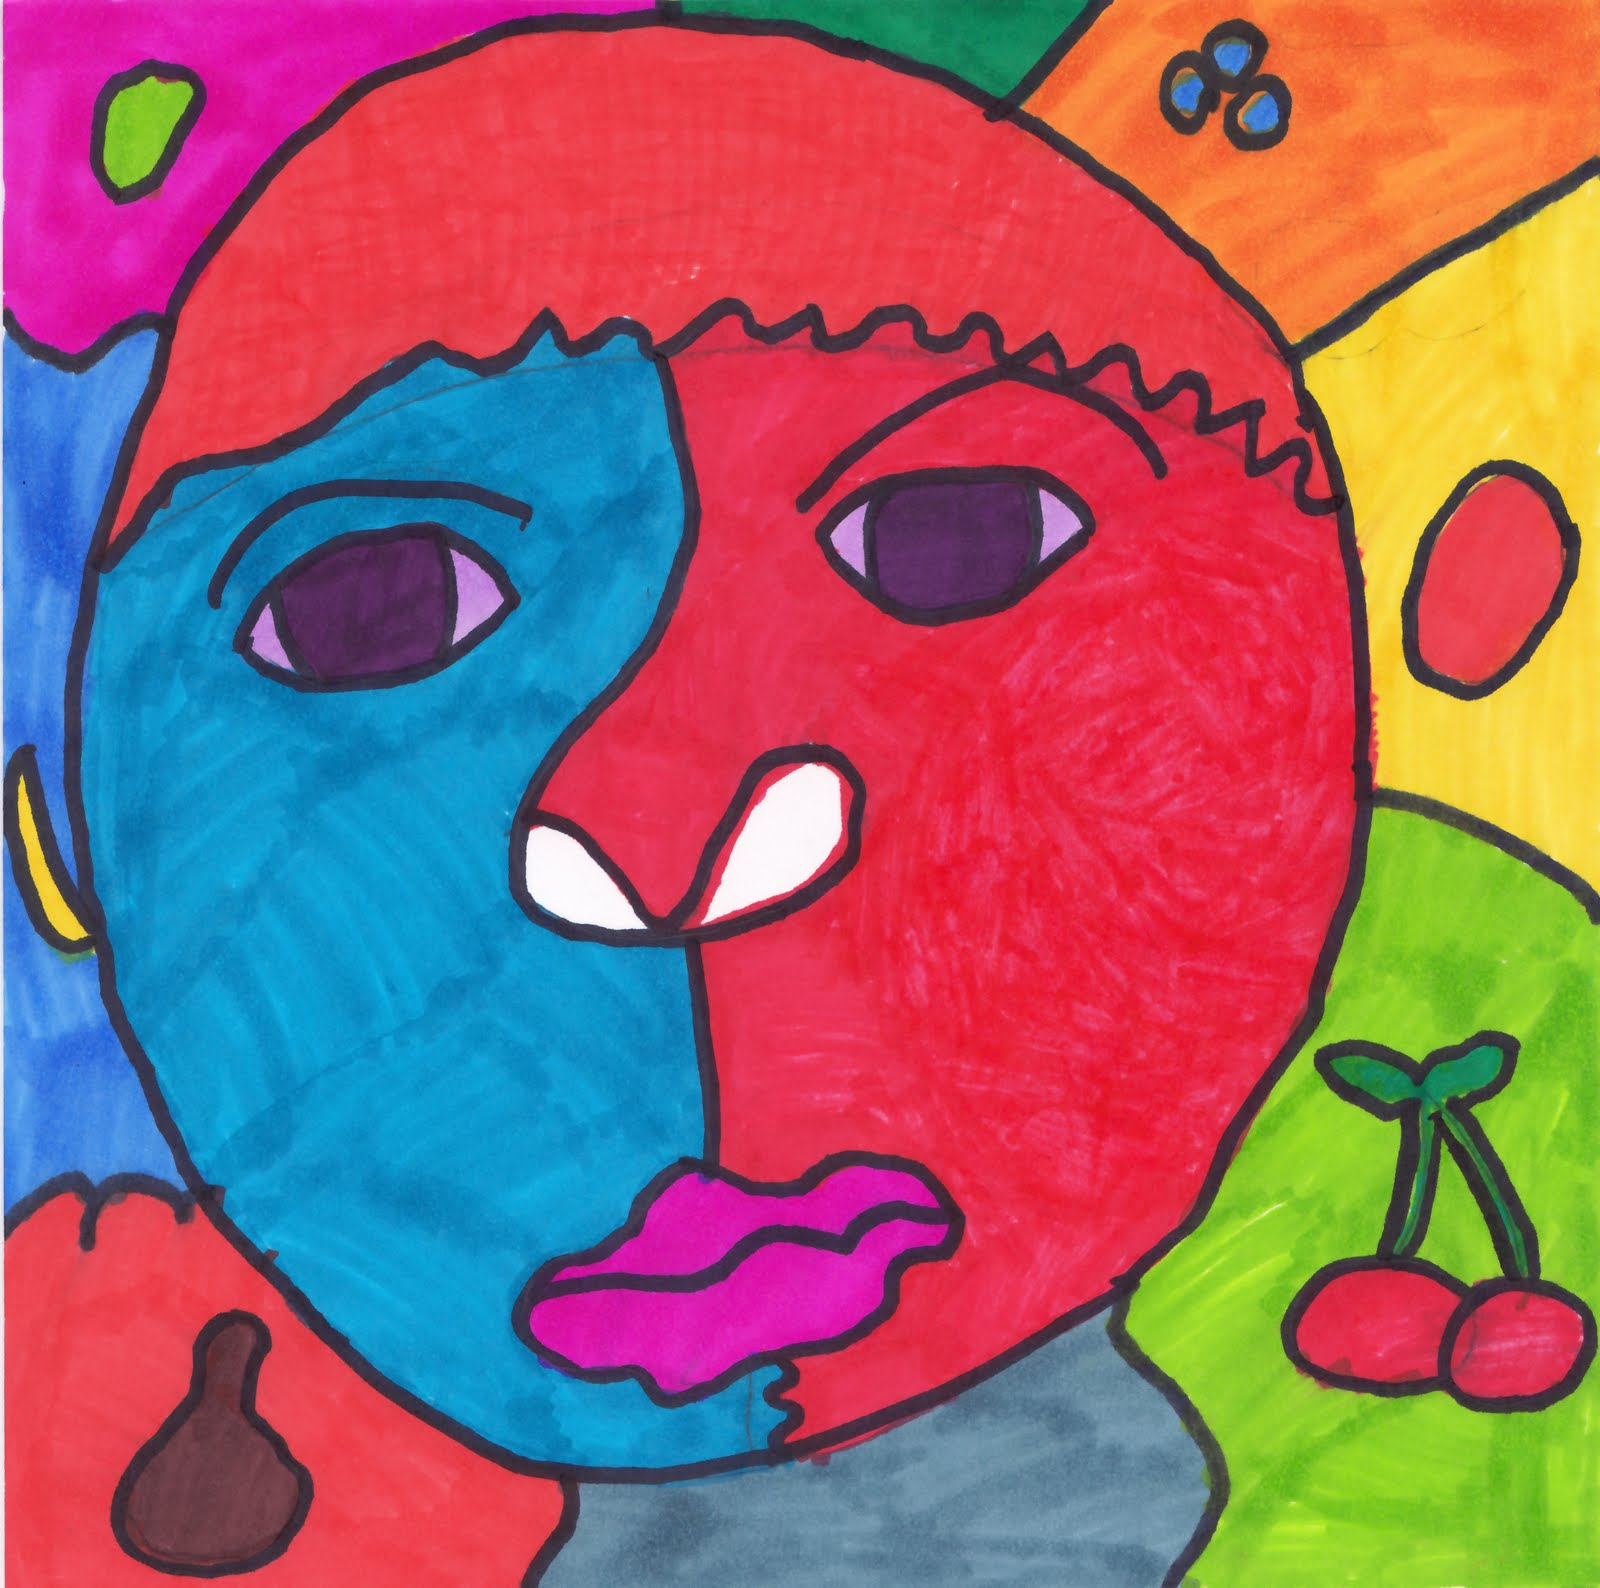 Picasso Self Portraits For Kids Picasso-inspired self portrait